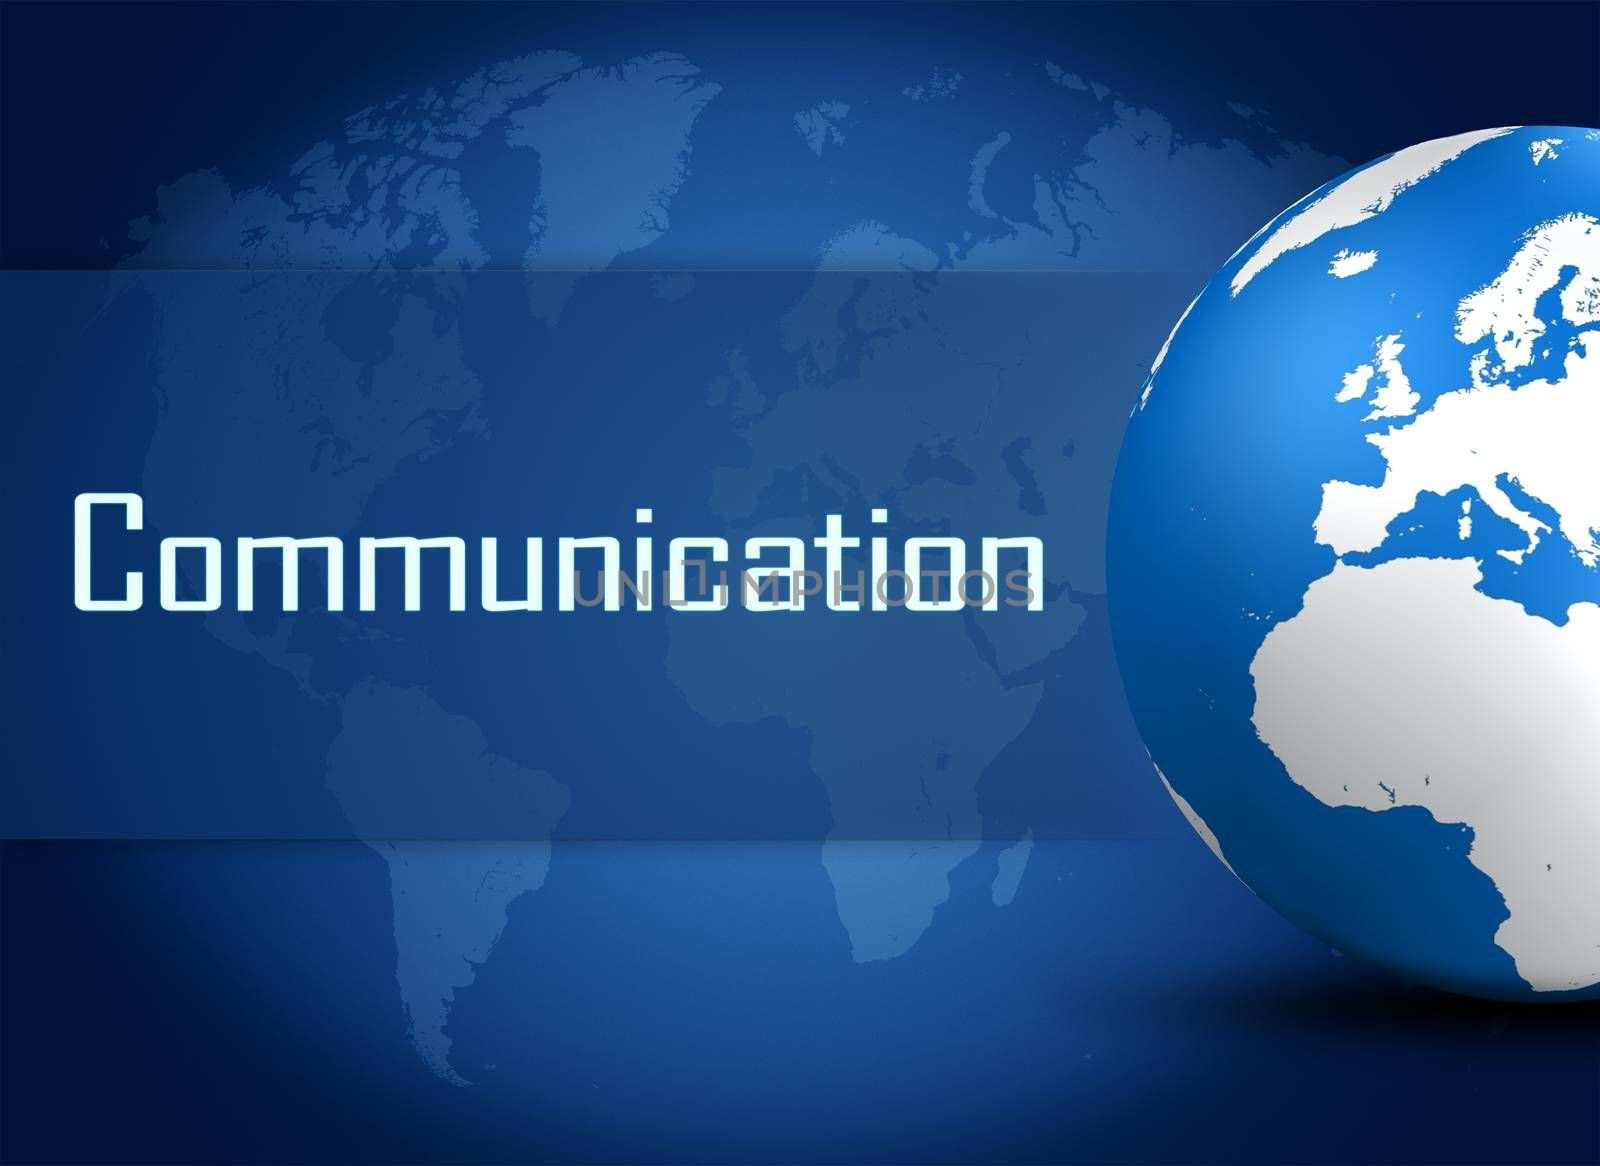 Communication concept with globe on blue background